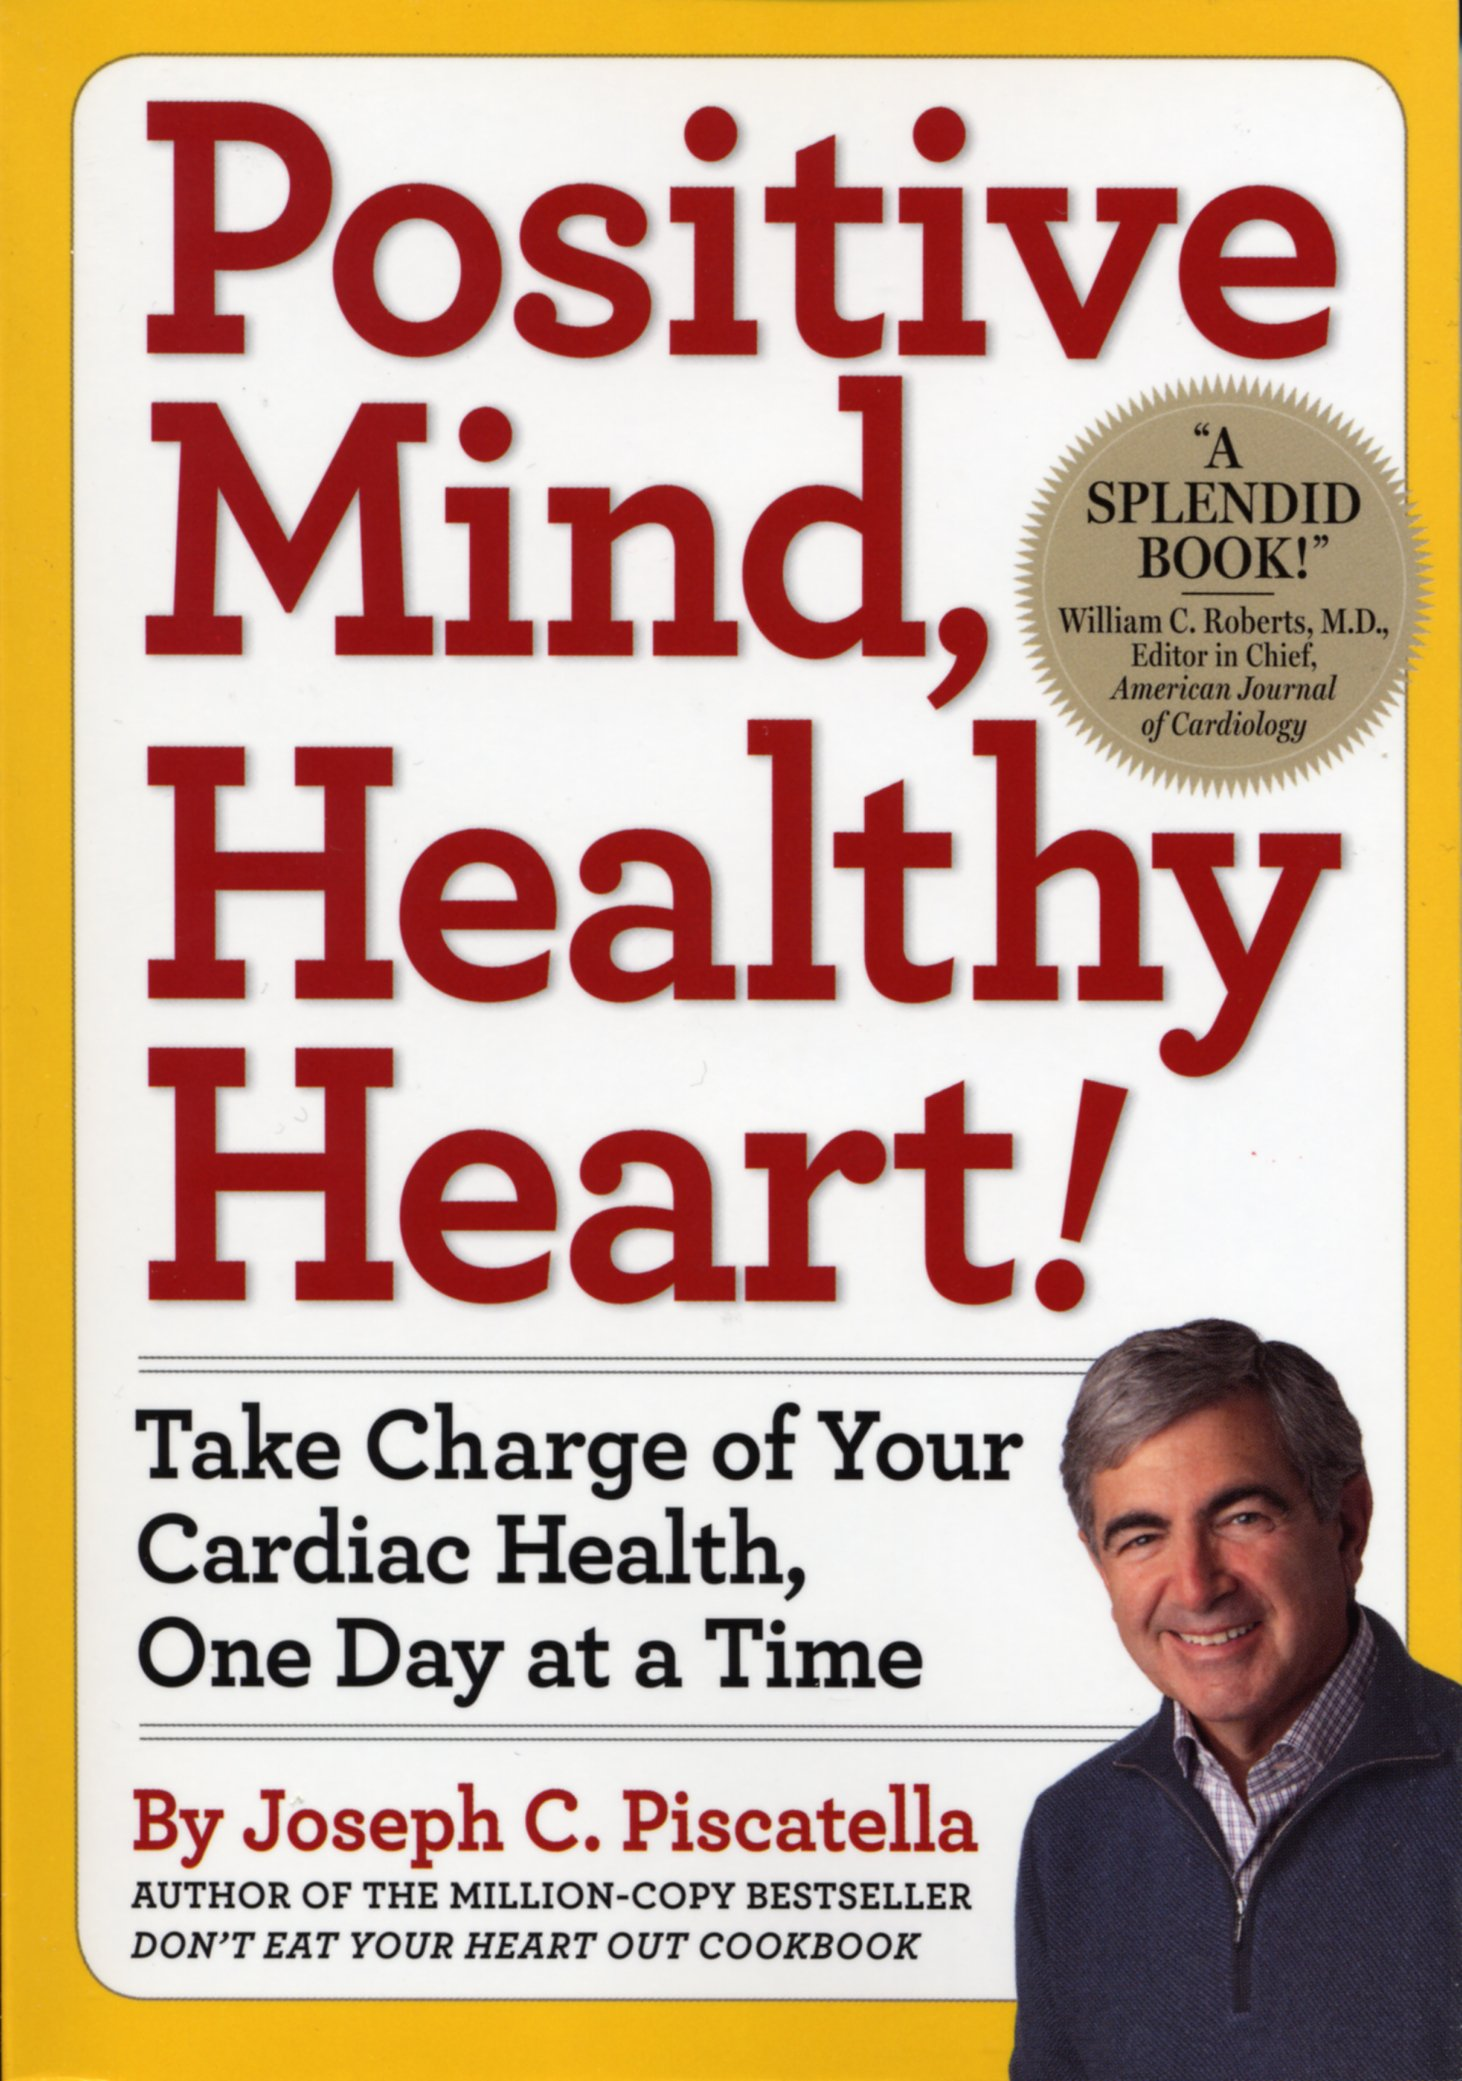 Download Positive Mind, Healthy Heart!: Take Charge of Your Cardiac Health, One Day at a Time ebook